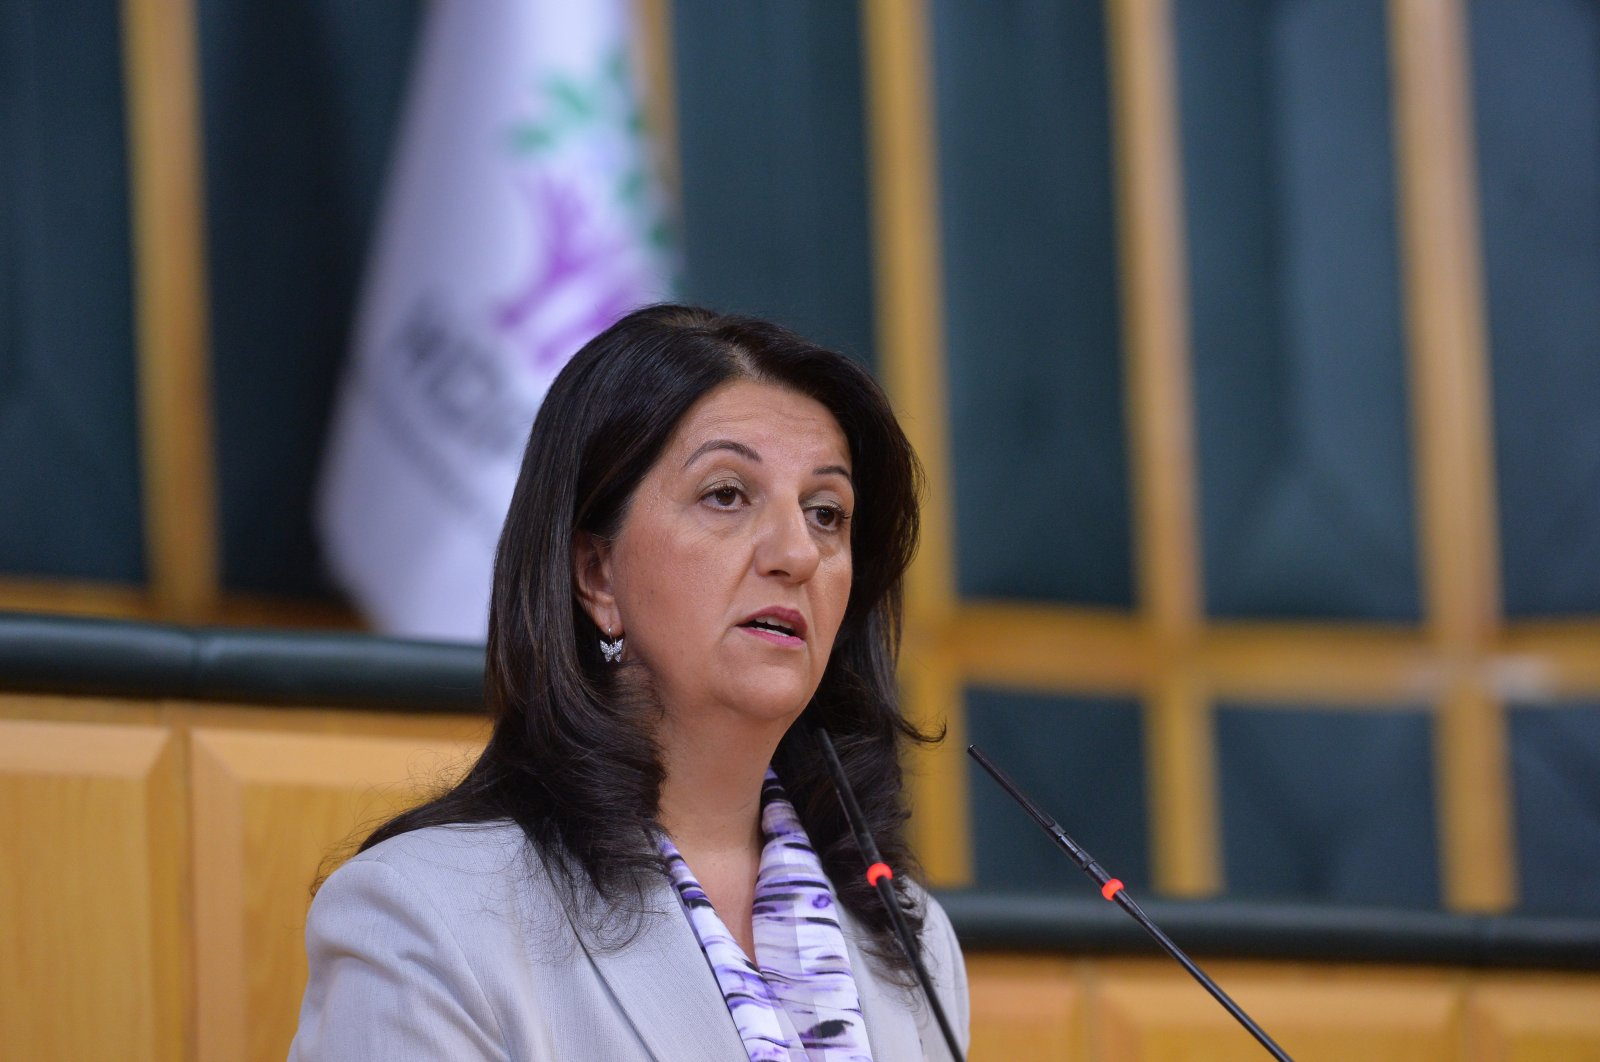 HDP co-Chairperson Pervin Buldan speaks at her party's parliamentary group meeting in Ankara, Oct. 2, 2018. (Sabah File Photo)